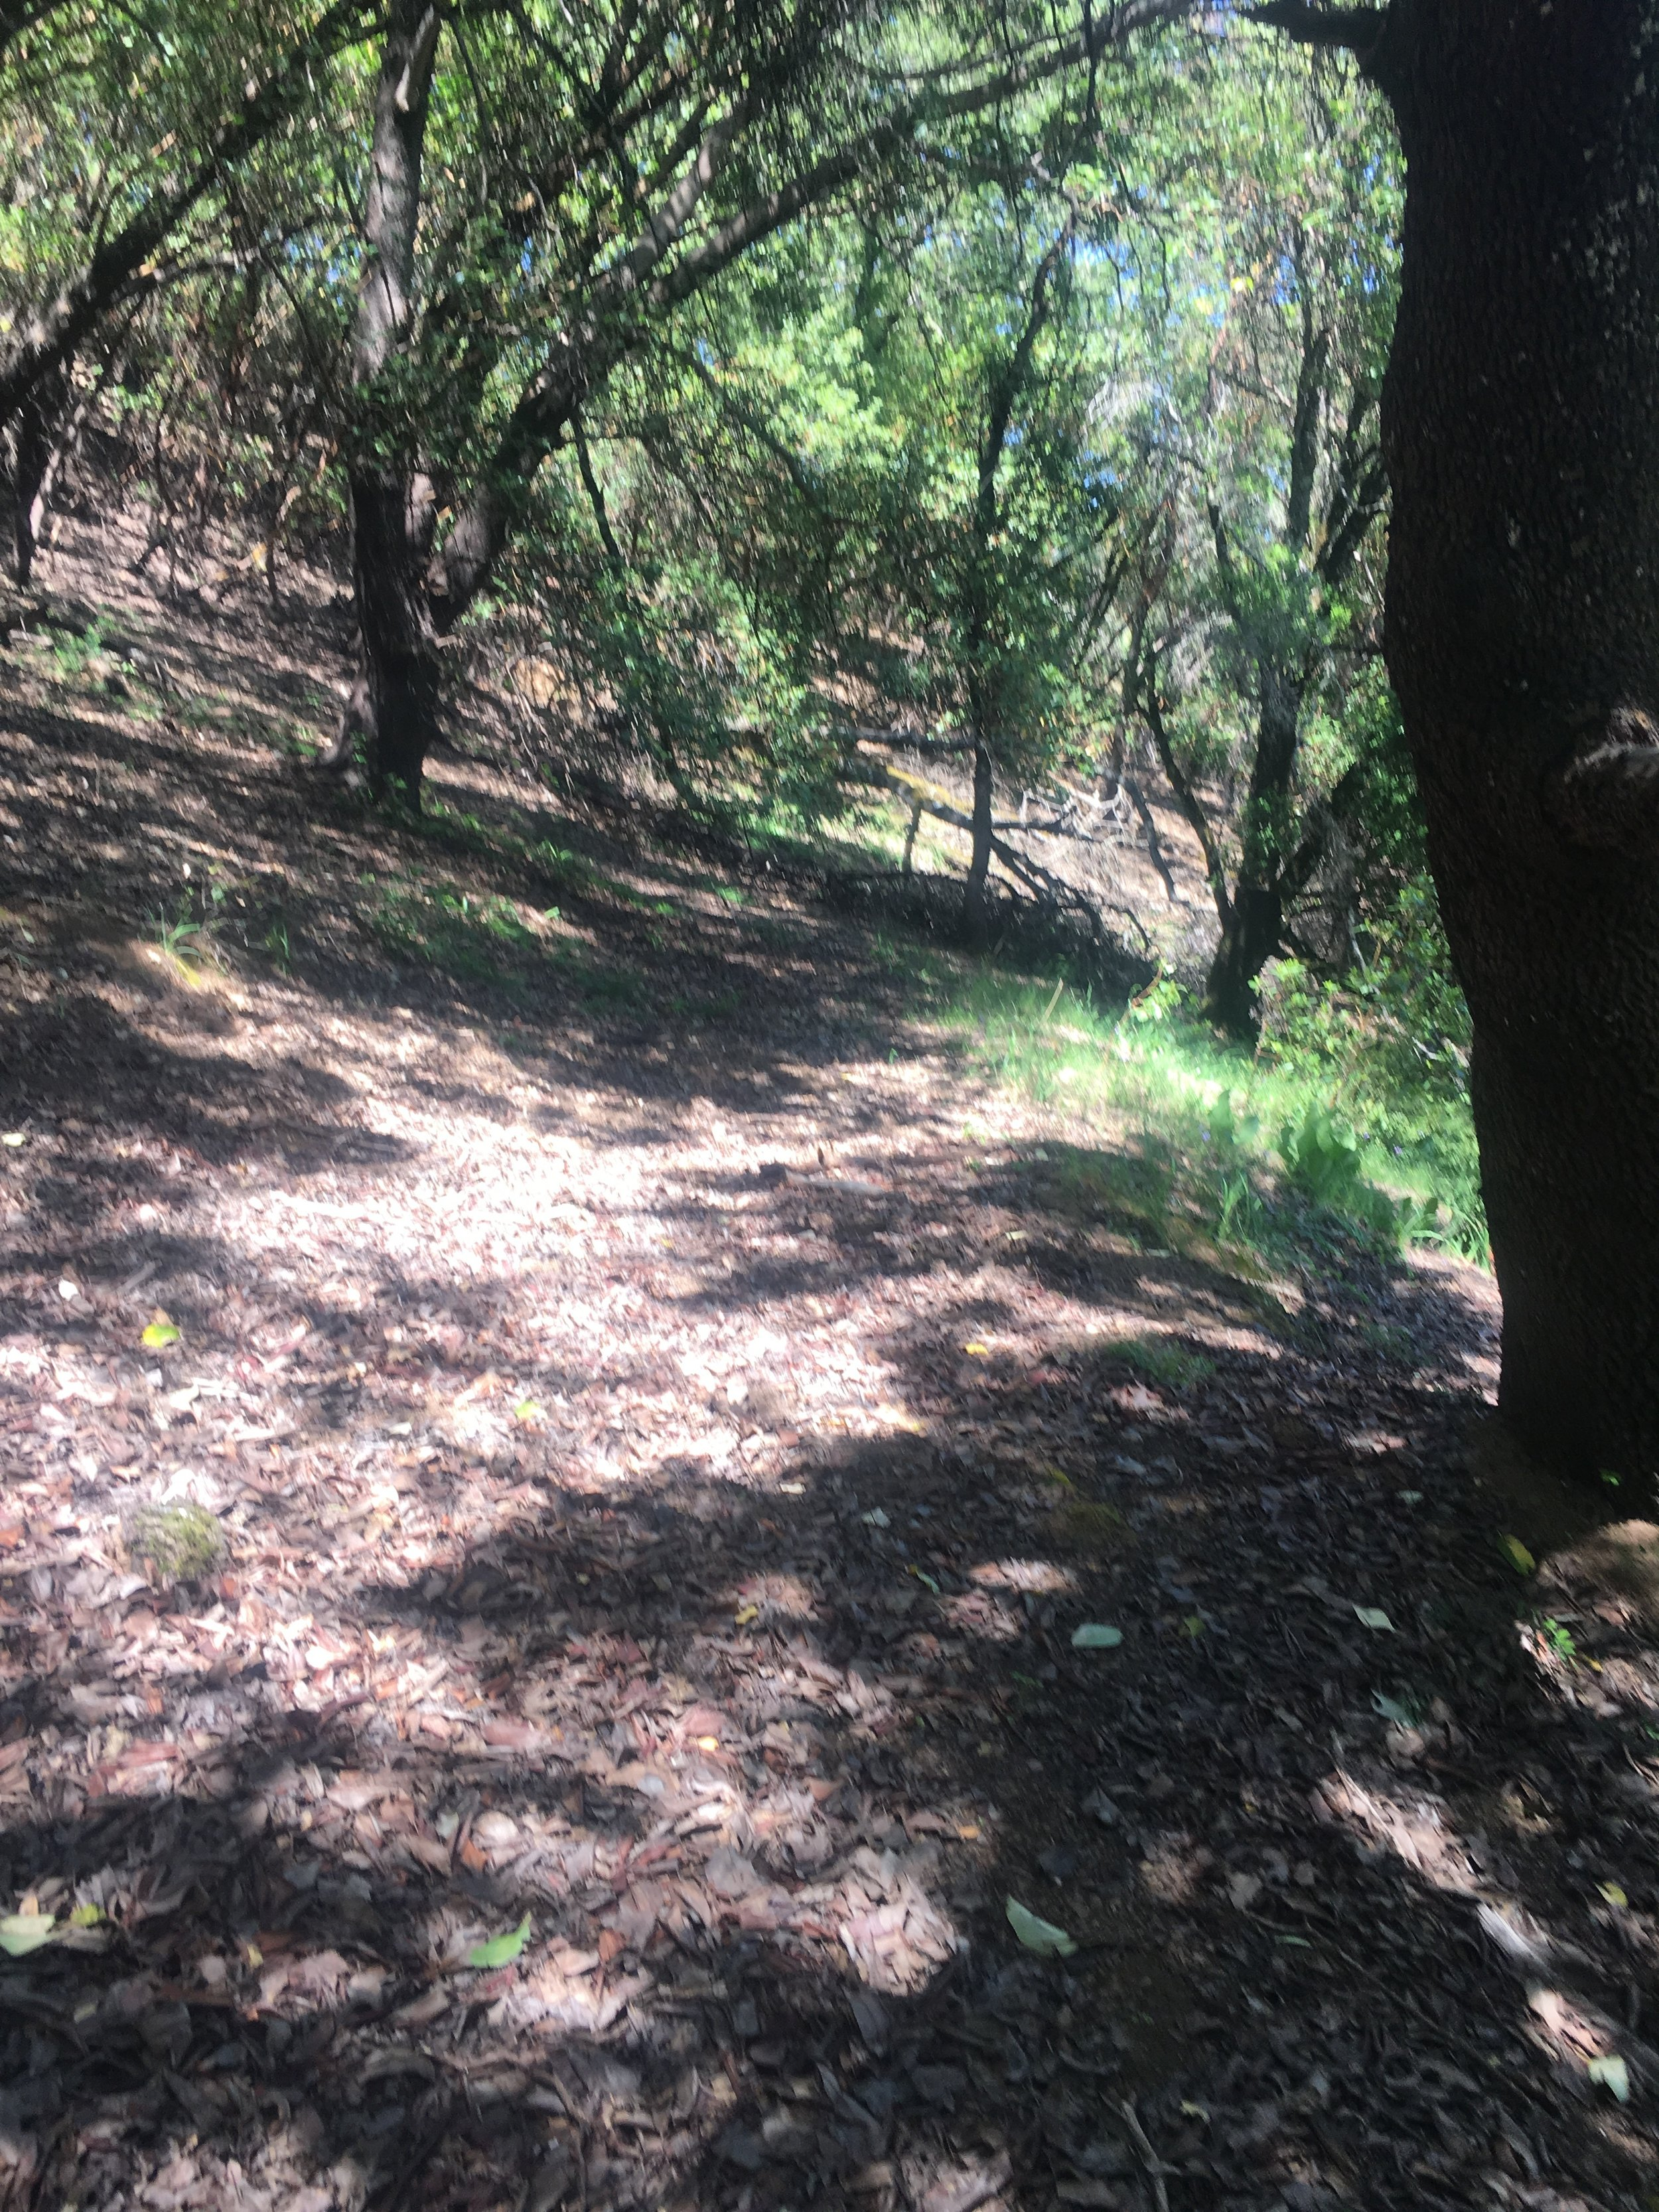 Trail through the forested 40 acres in Yorkville, CA. Anderson Valley